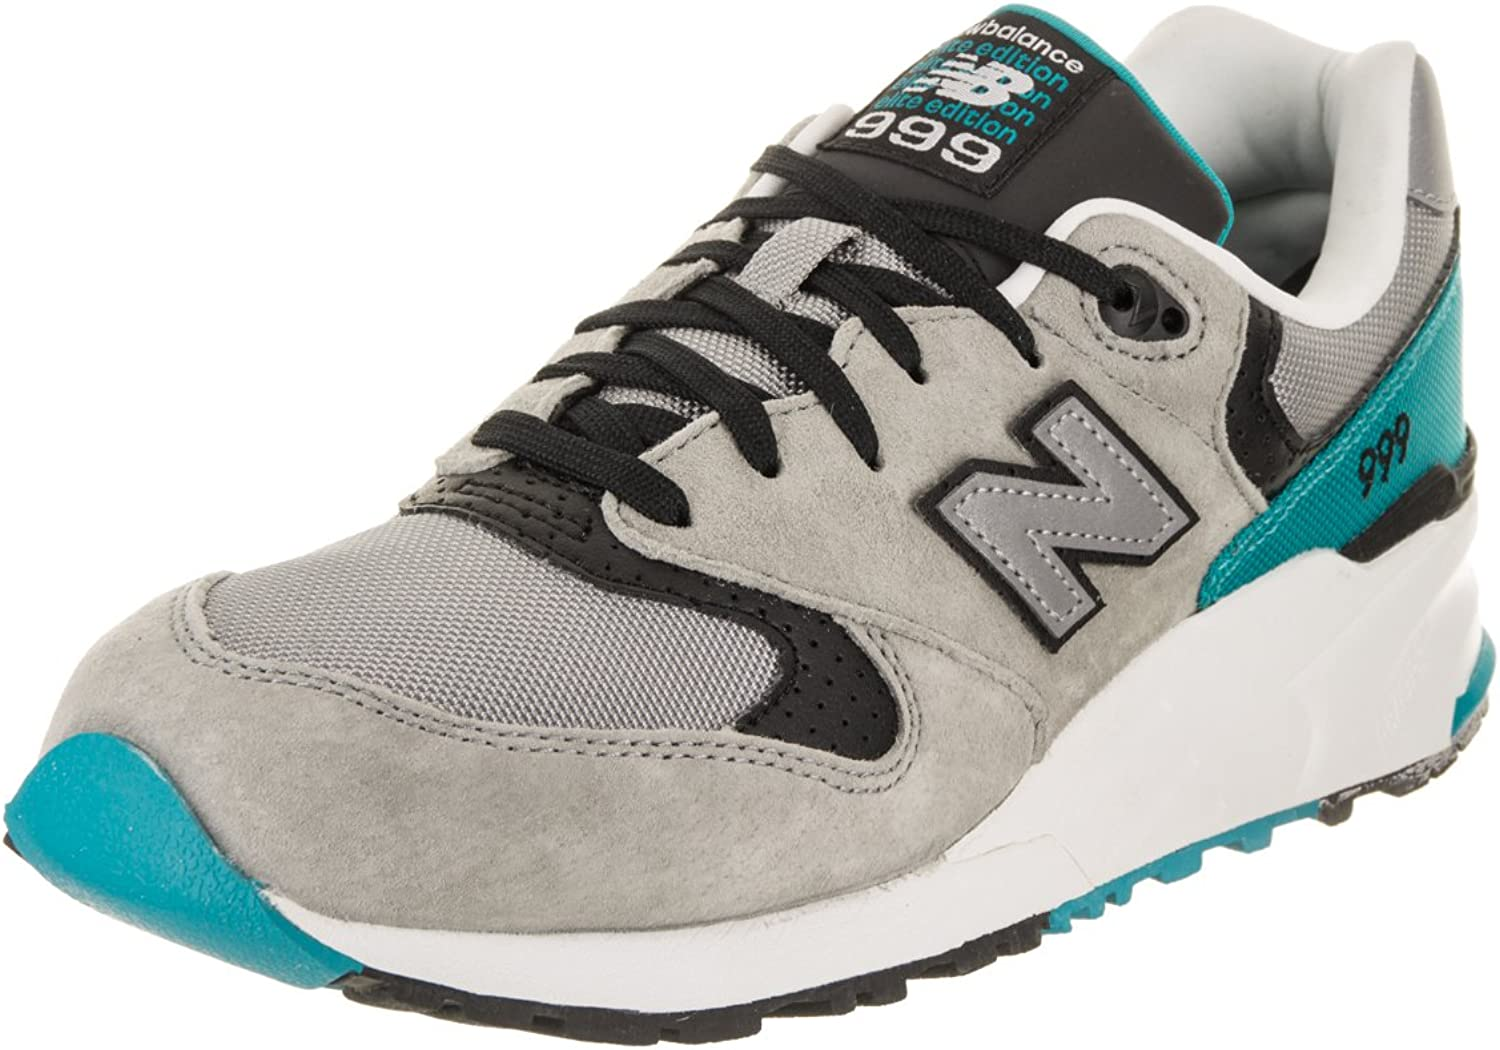 New Balance Men's 999 Elite Edition Classics Running shoes